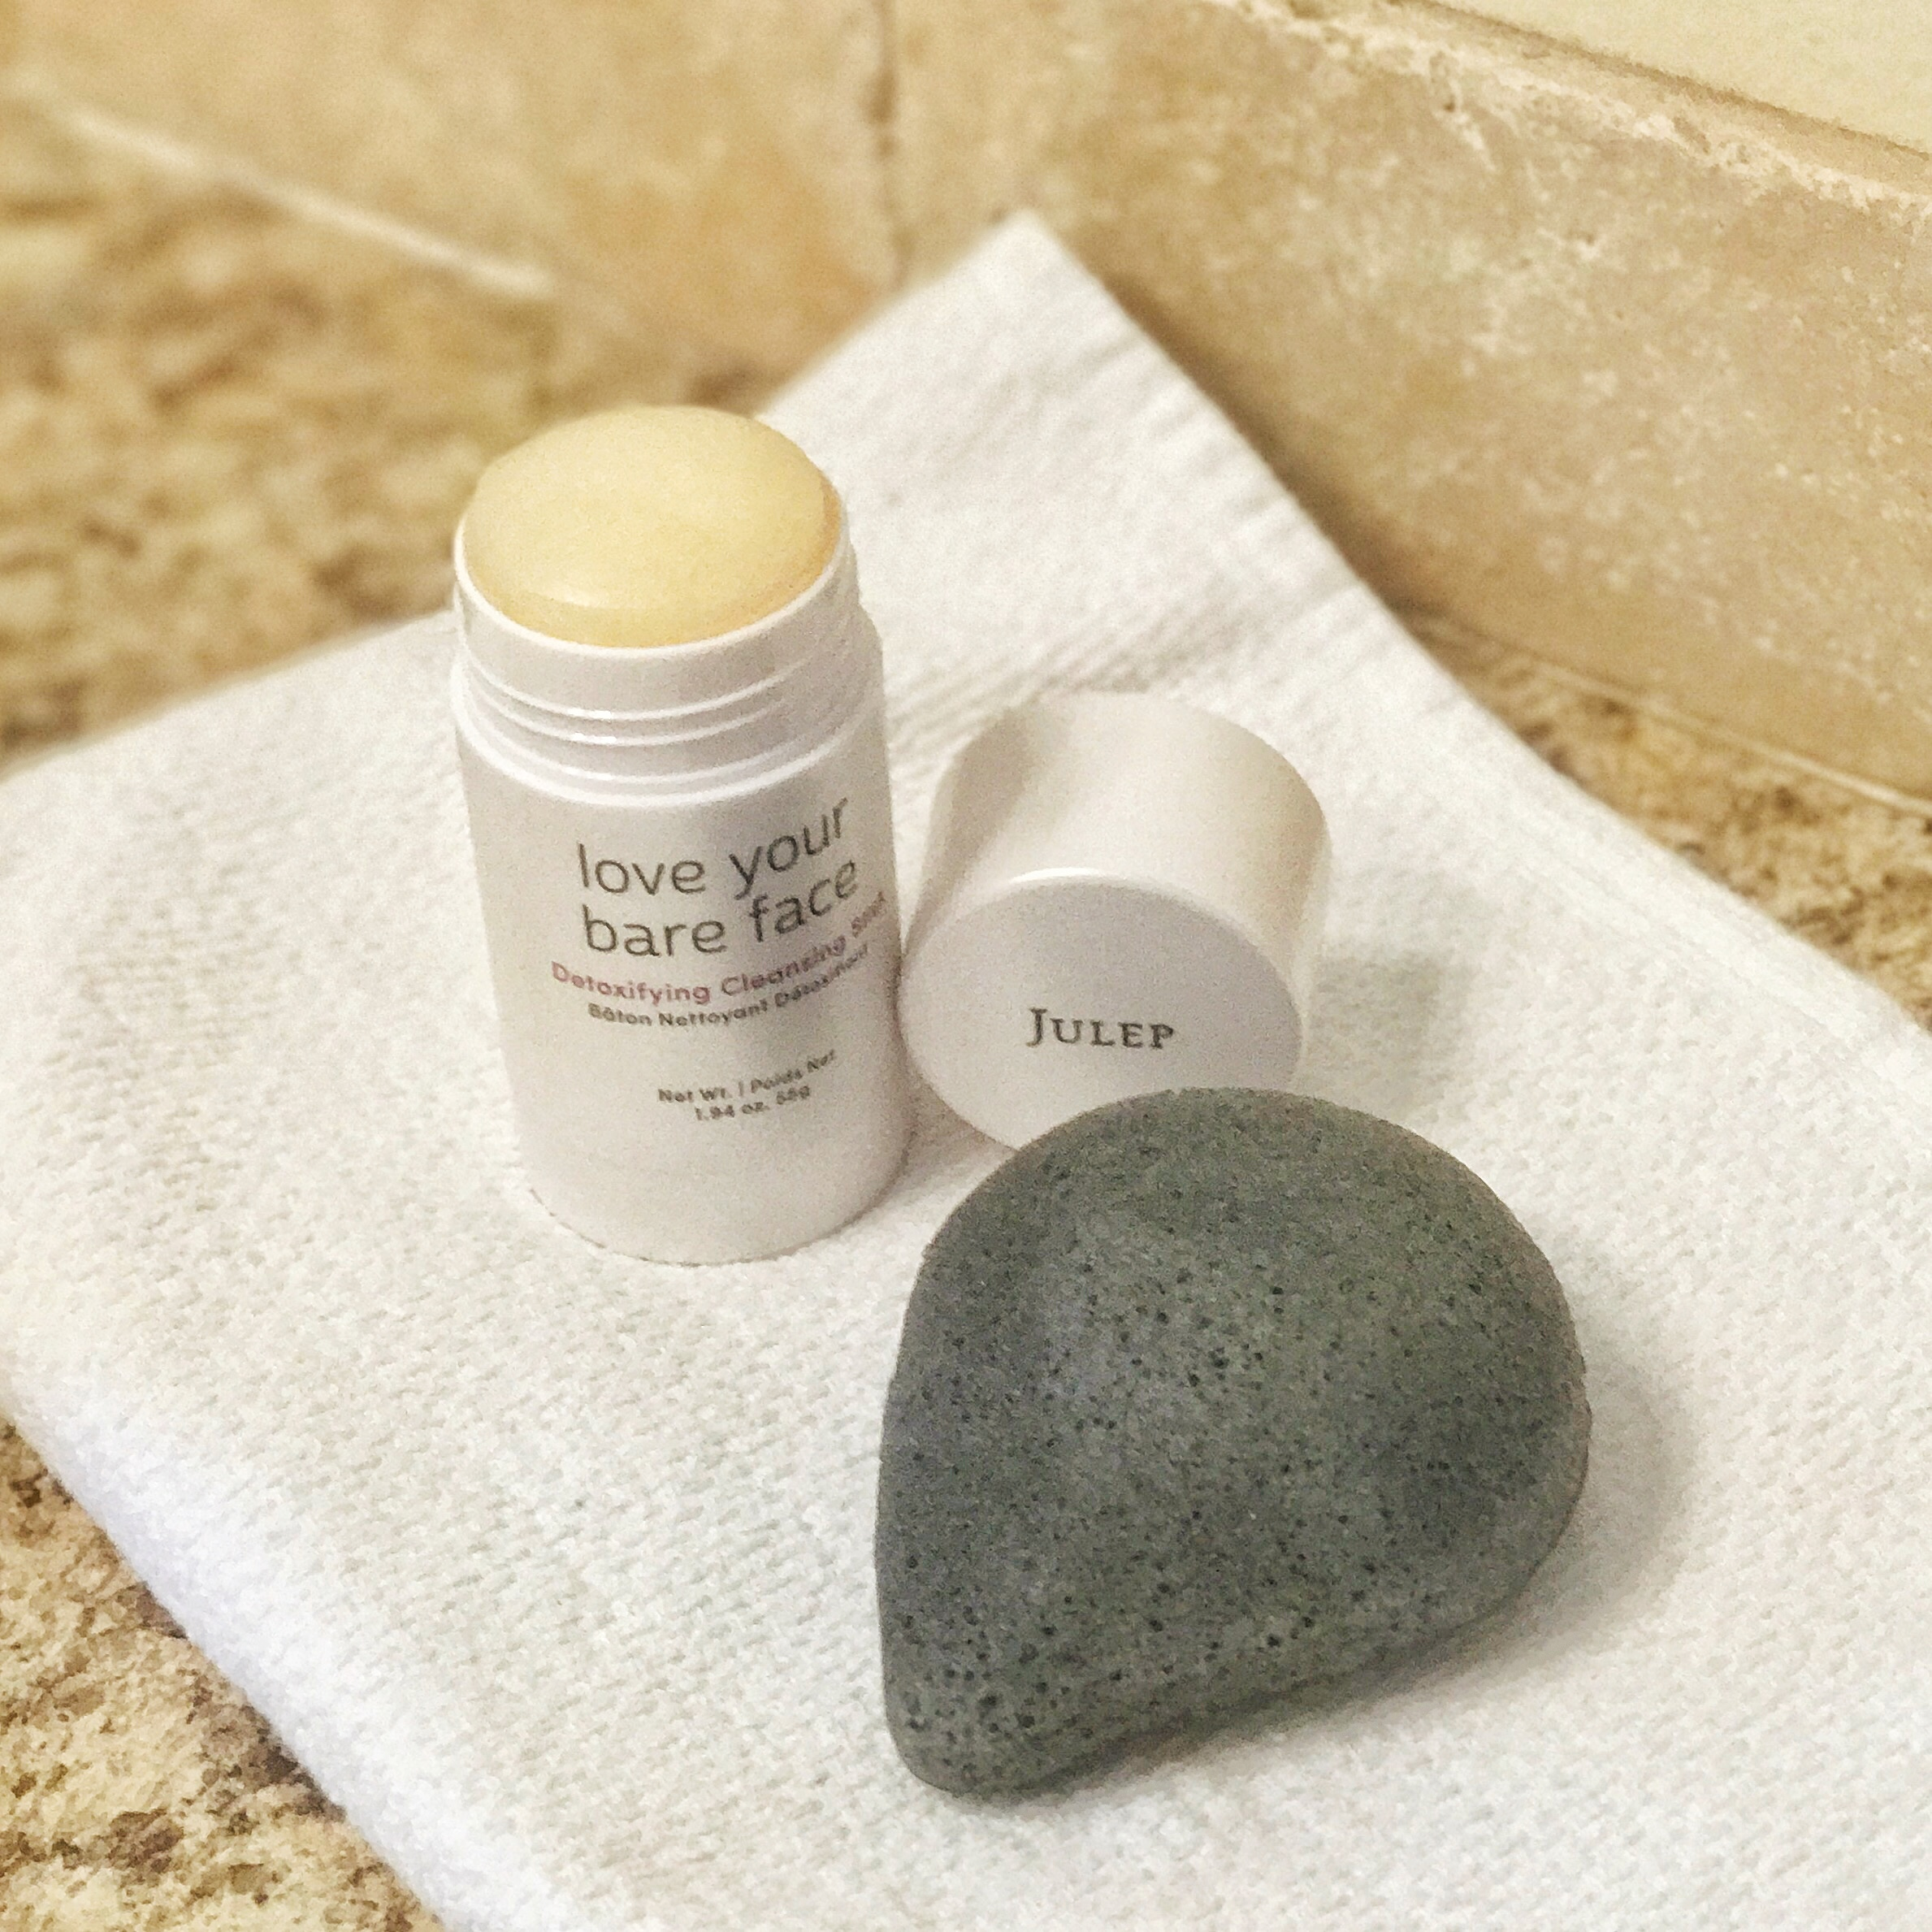 The Love your Bare Face Detoxifying Cleansing Stick   and   Konjac Sponge